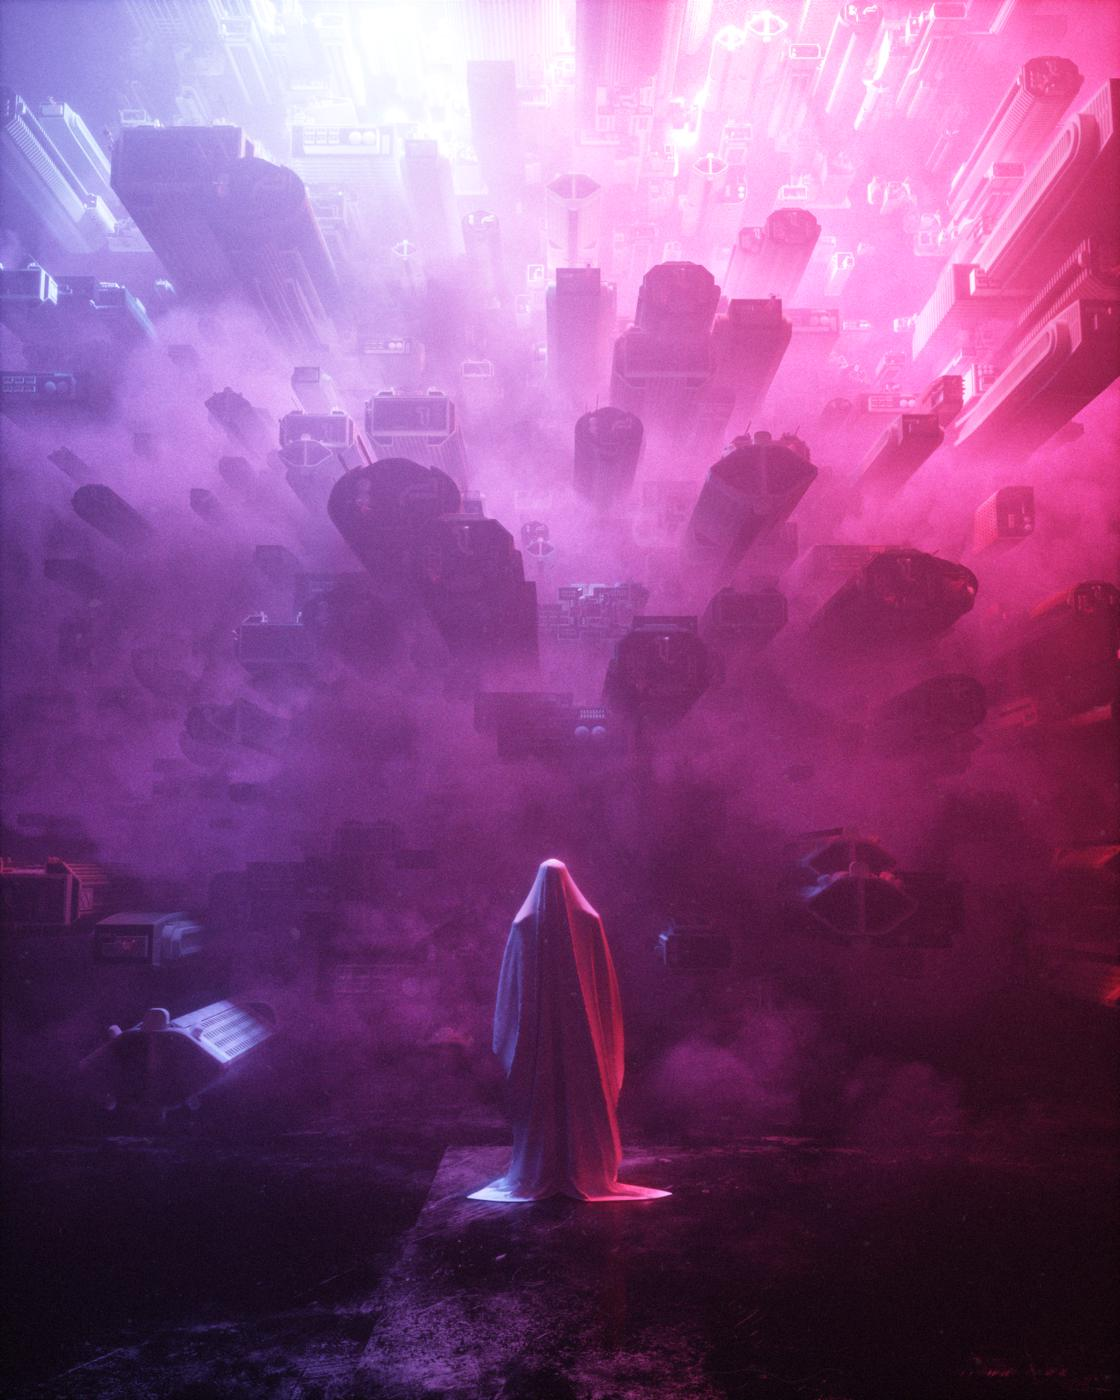 Dark Future – The striking and futuristic illustrations by Stuart Lippincott